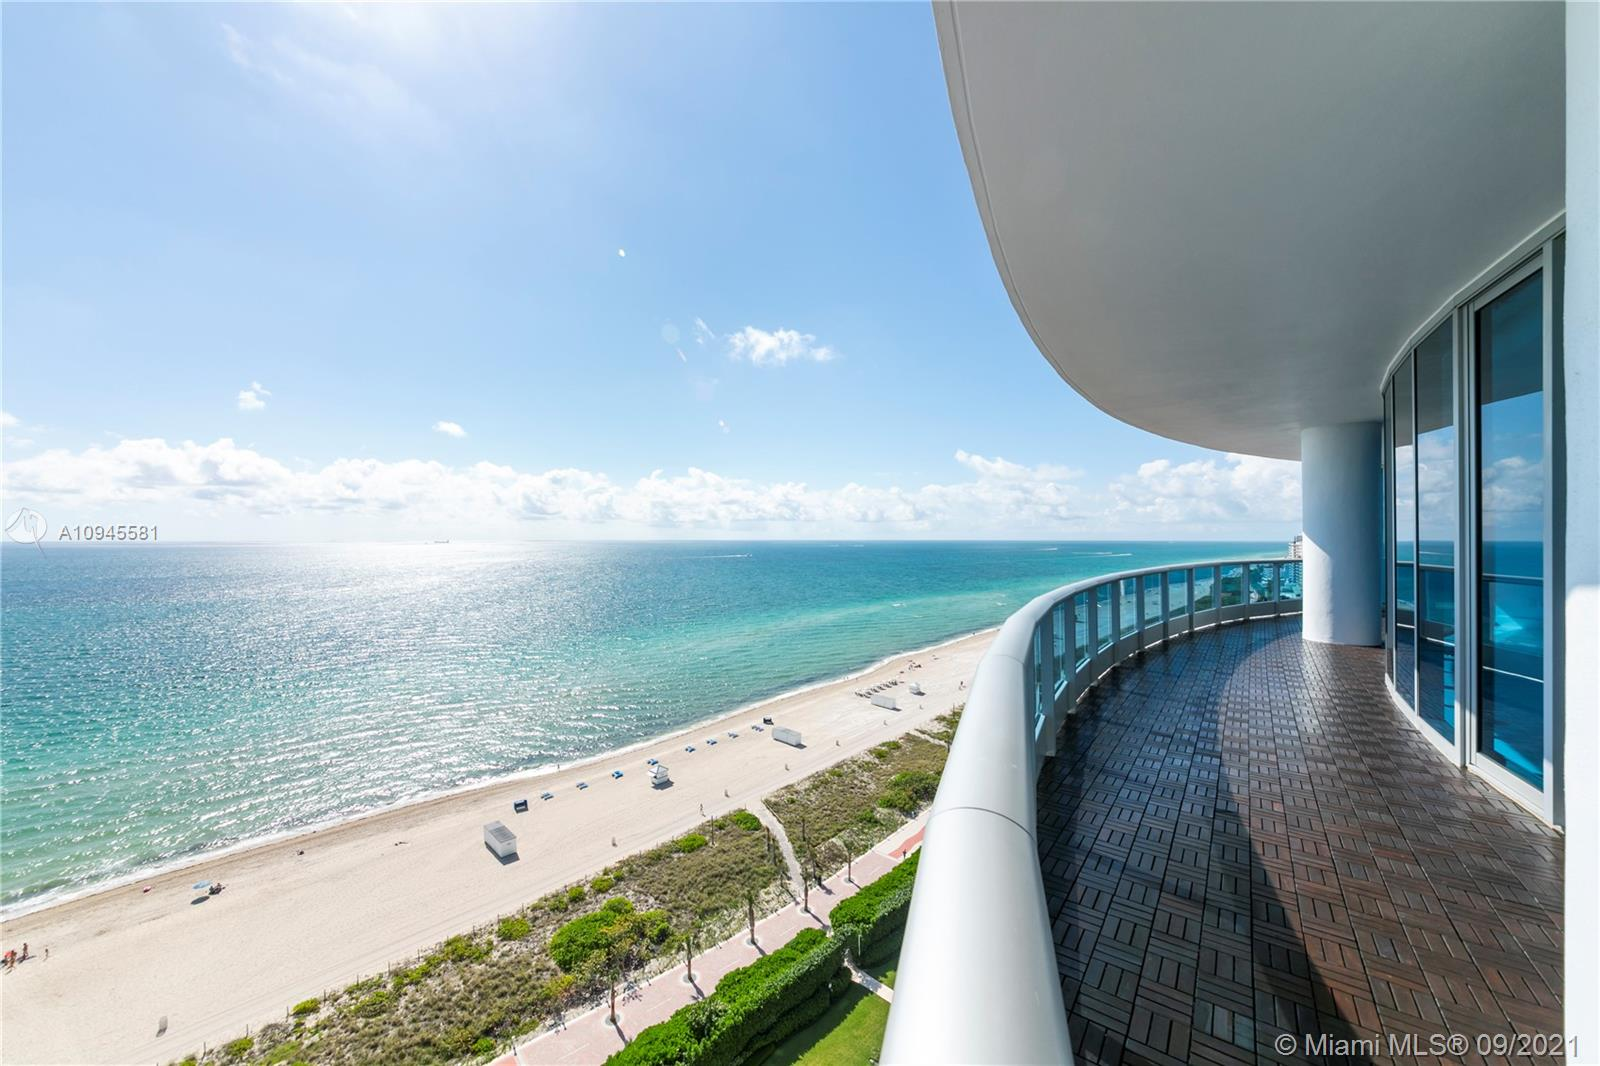 Welcome to one of the most breathtaking panoramic ocean views from this residence located at the distinguished Bath Club. Residence 1807 is conformed of a well allocated 2,959 SF of interior living area plus a large balcony conformed of 483 SF, with 3 bedrooms and 3-1/2 bathrooms. Enjoy floor-to-ceiling windows facing the ocean with contemporary high-end finishes, including automatic blinds, porcelain floors, custom kitchen, and closets plus a spacious laundry room. Furthermore, you will have 2 assigned parking spaces plus complimentary valet for your guests. The Bath Club features 540 feet of beachfront, it also offers a swimming pool with lap lanes and outdoor spa, two clay tennis courts, premium concierge services, 24-hr. security, and the finest in-house dining.